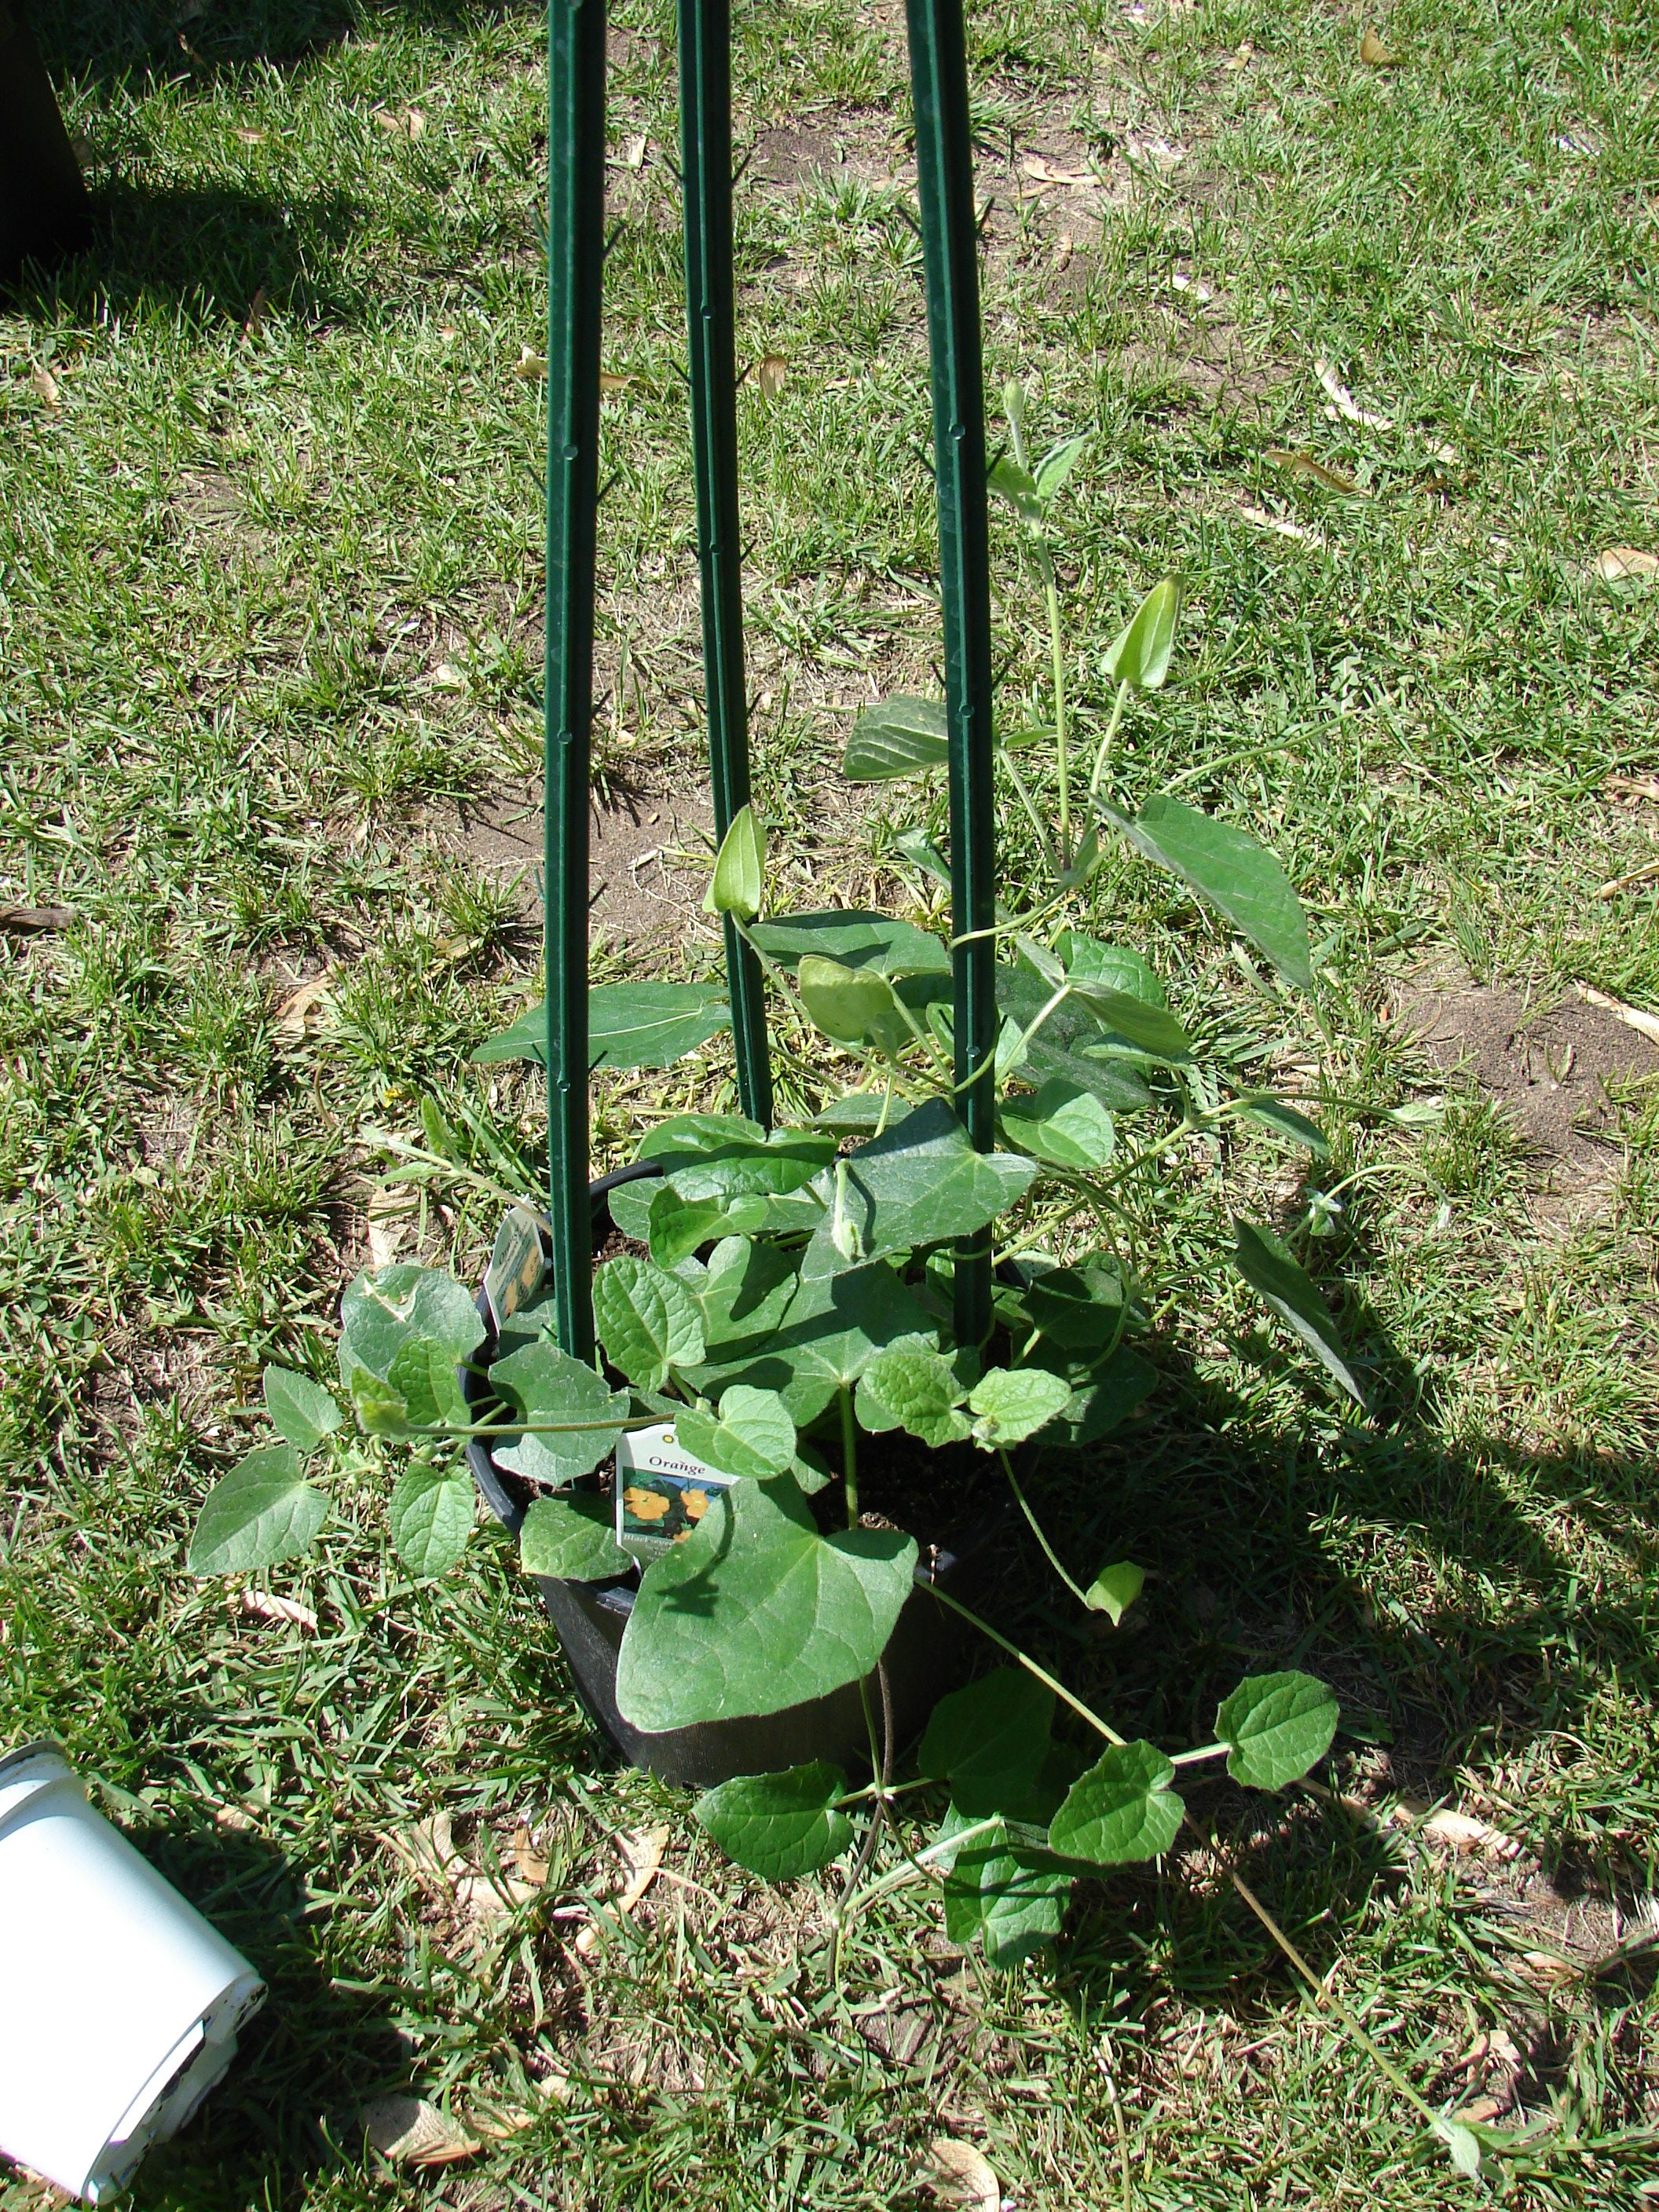 Here Is The 2nd Plant For This Project It Is Called A Black Eyed